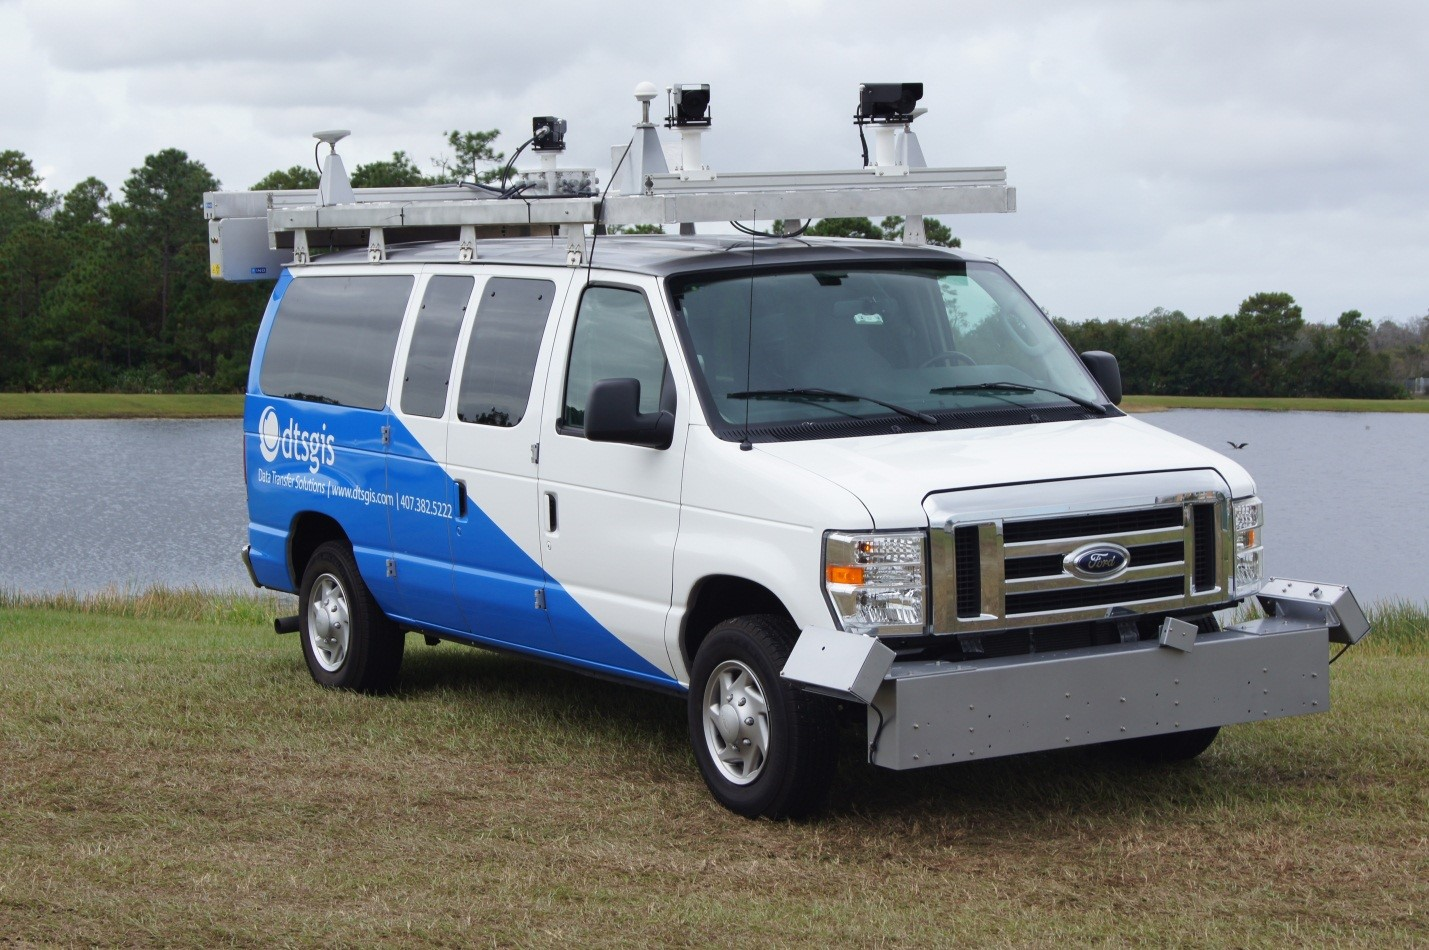 Here you see DTS's mobile asset collection van equipped with highly sensitive laser scanning equipment. This van will be the main data collection tool for the City of Peoria project.